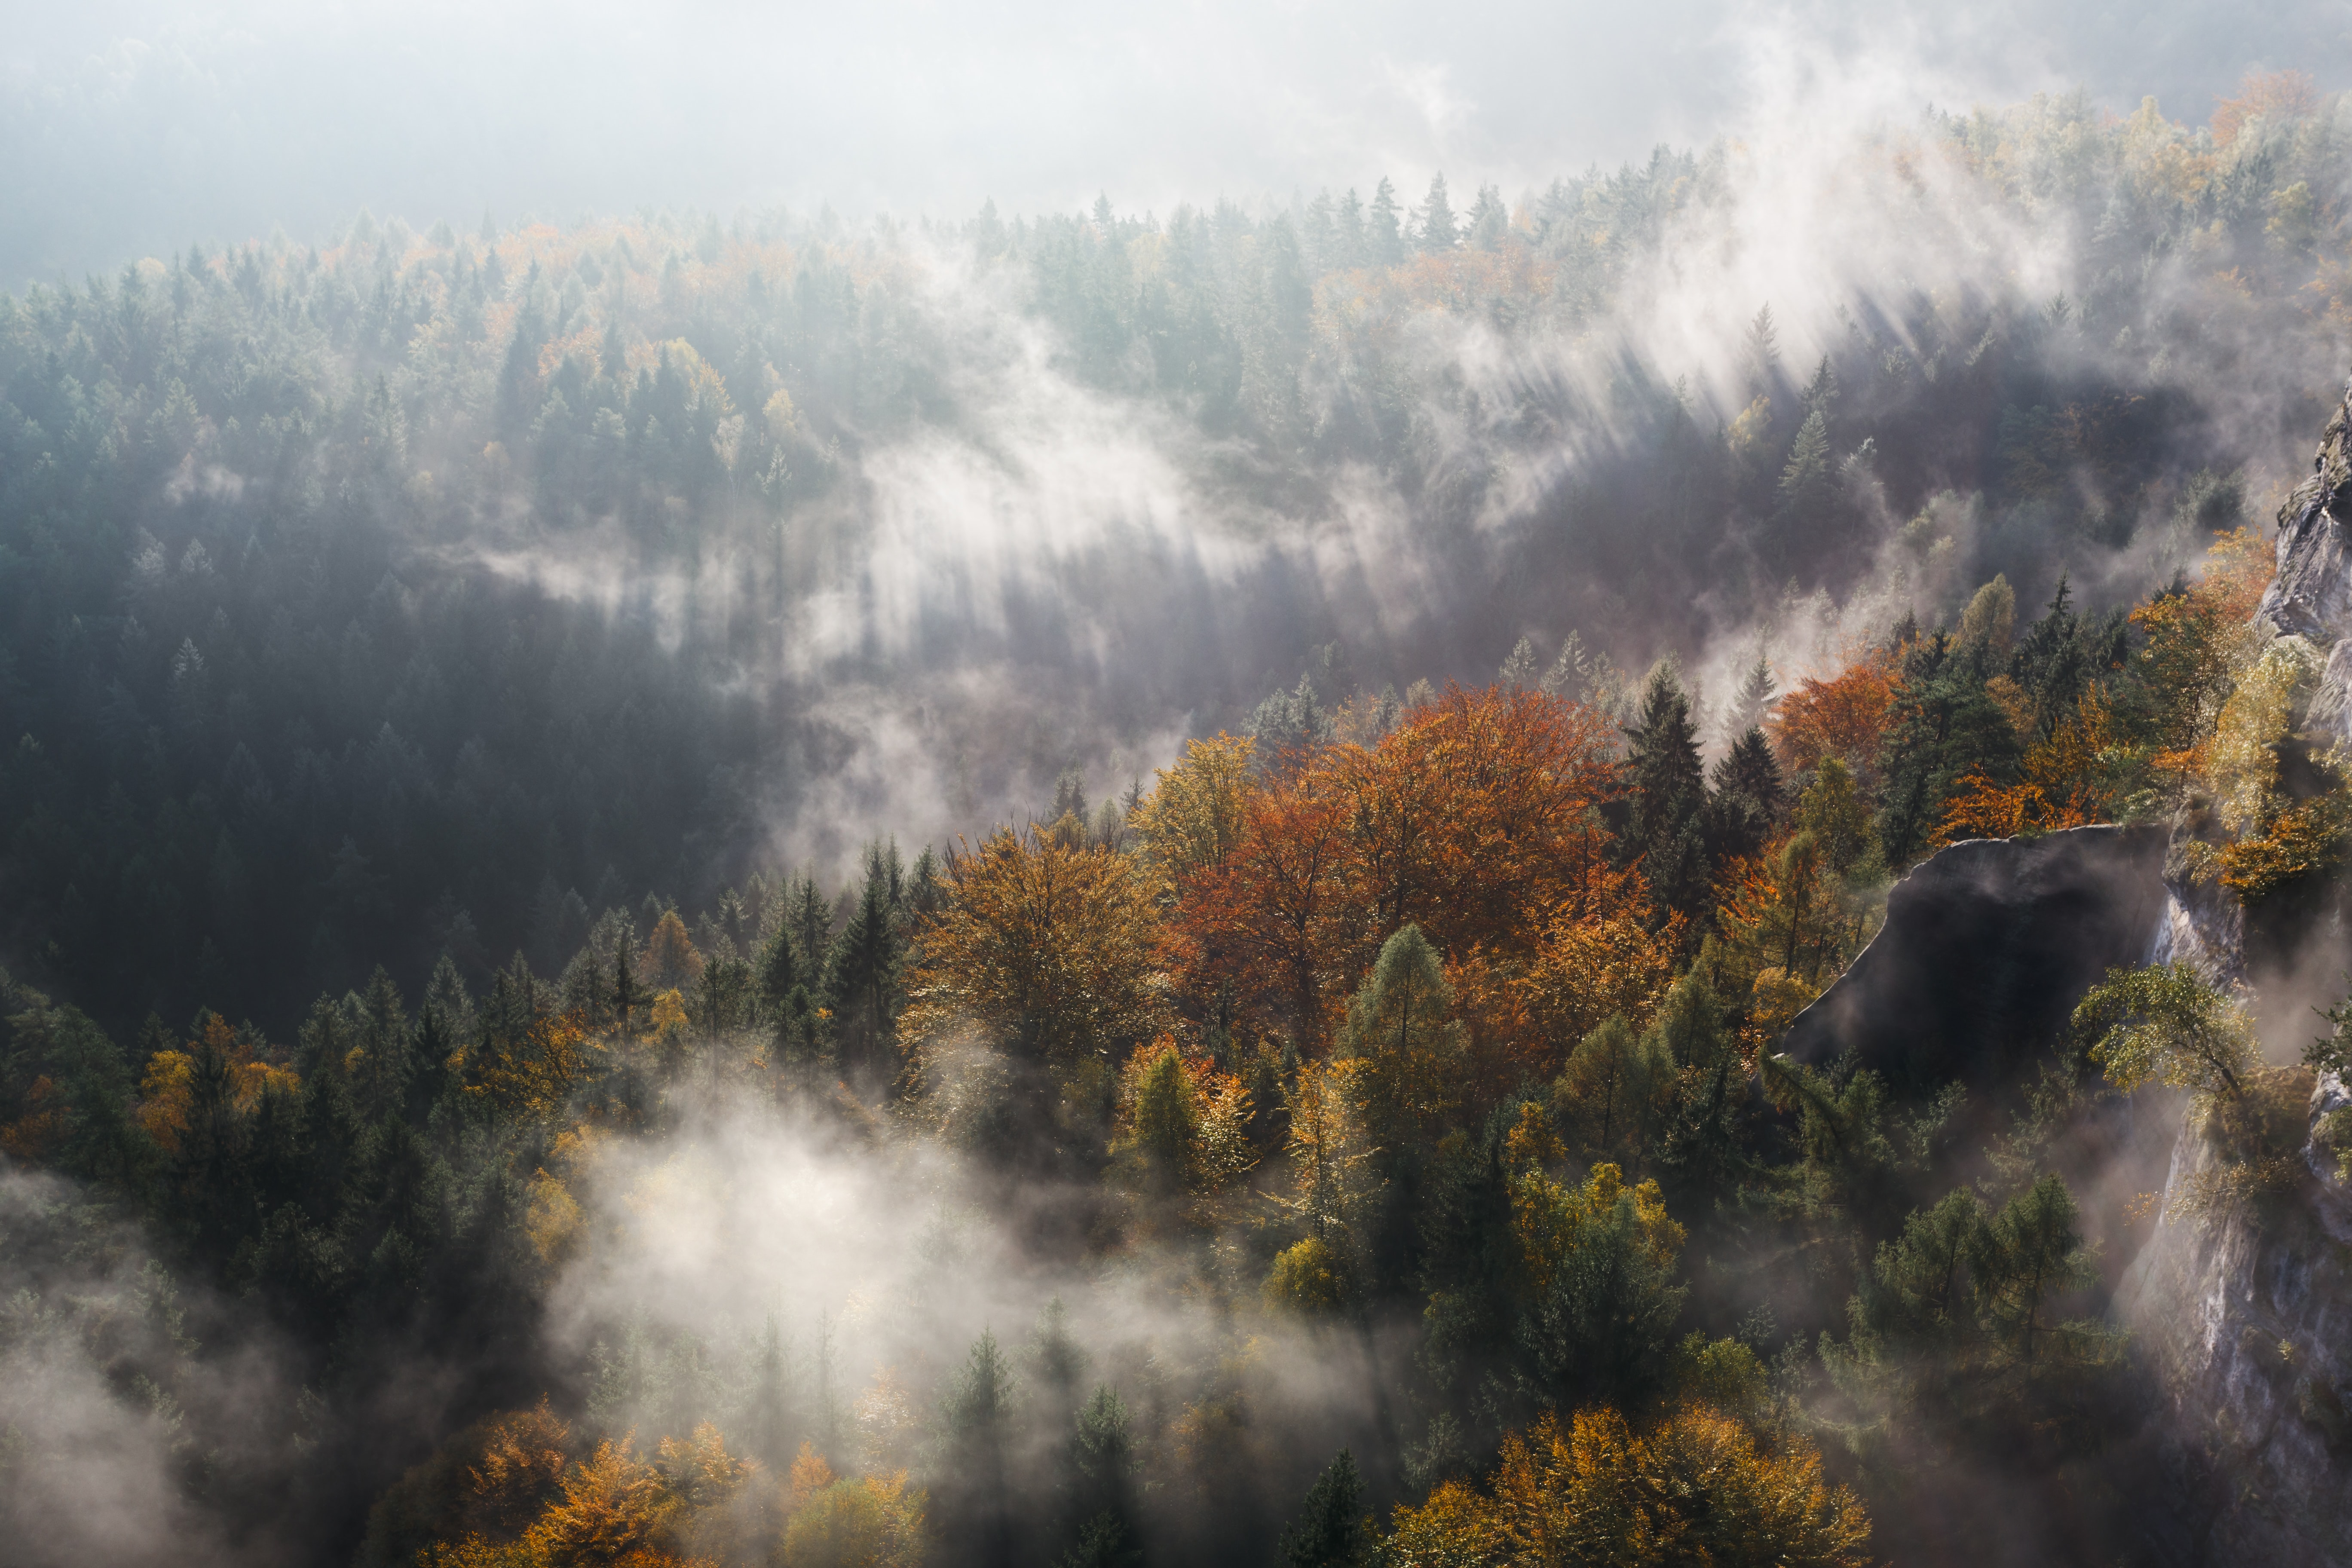 Clouds of fog over colorful autumn trees near a rock formation